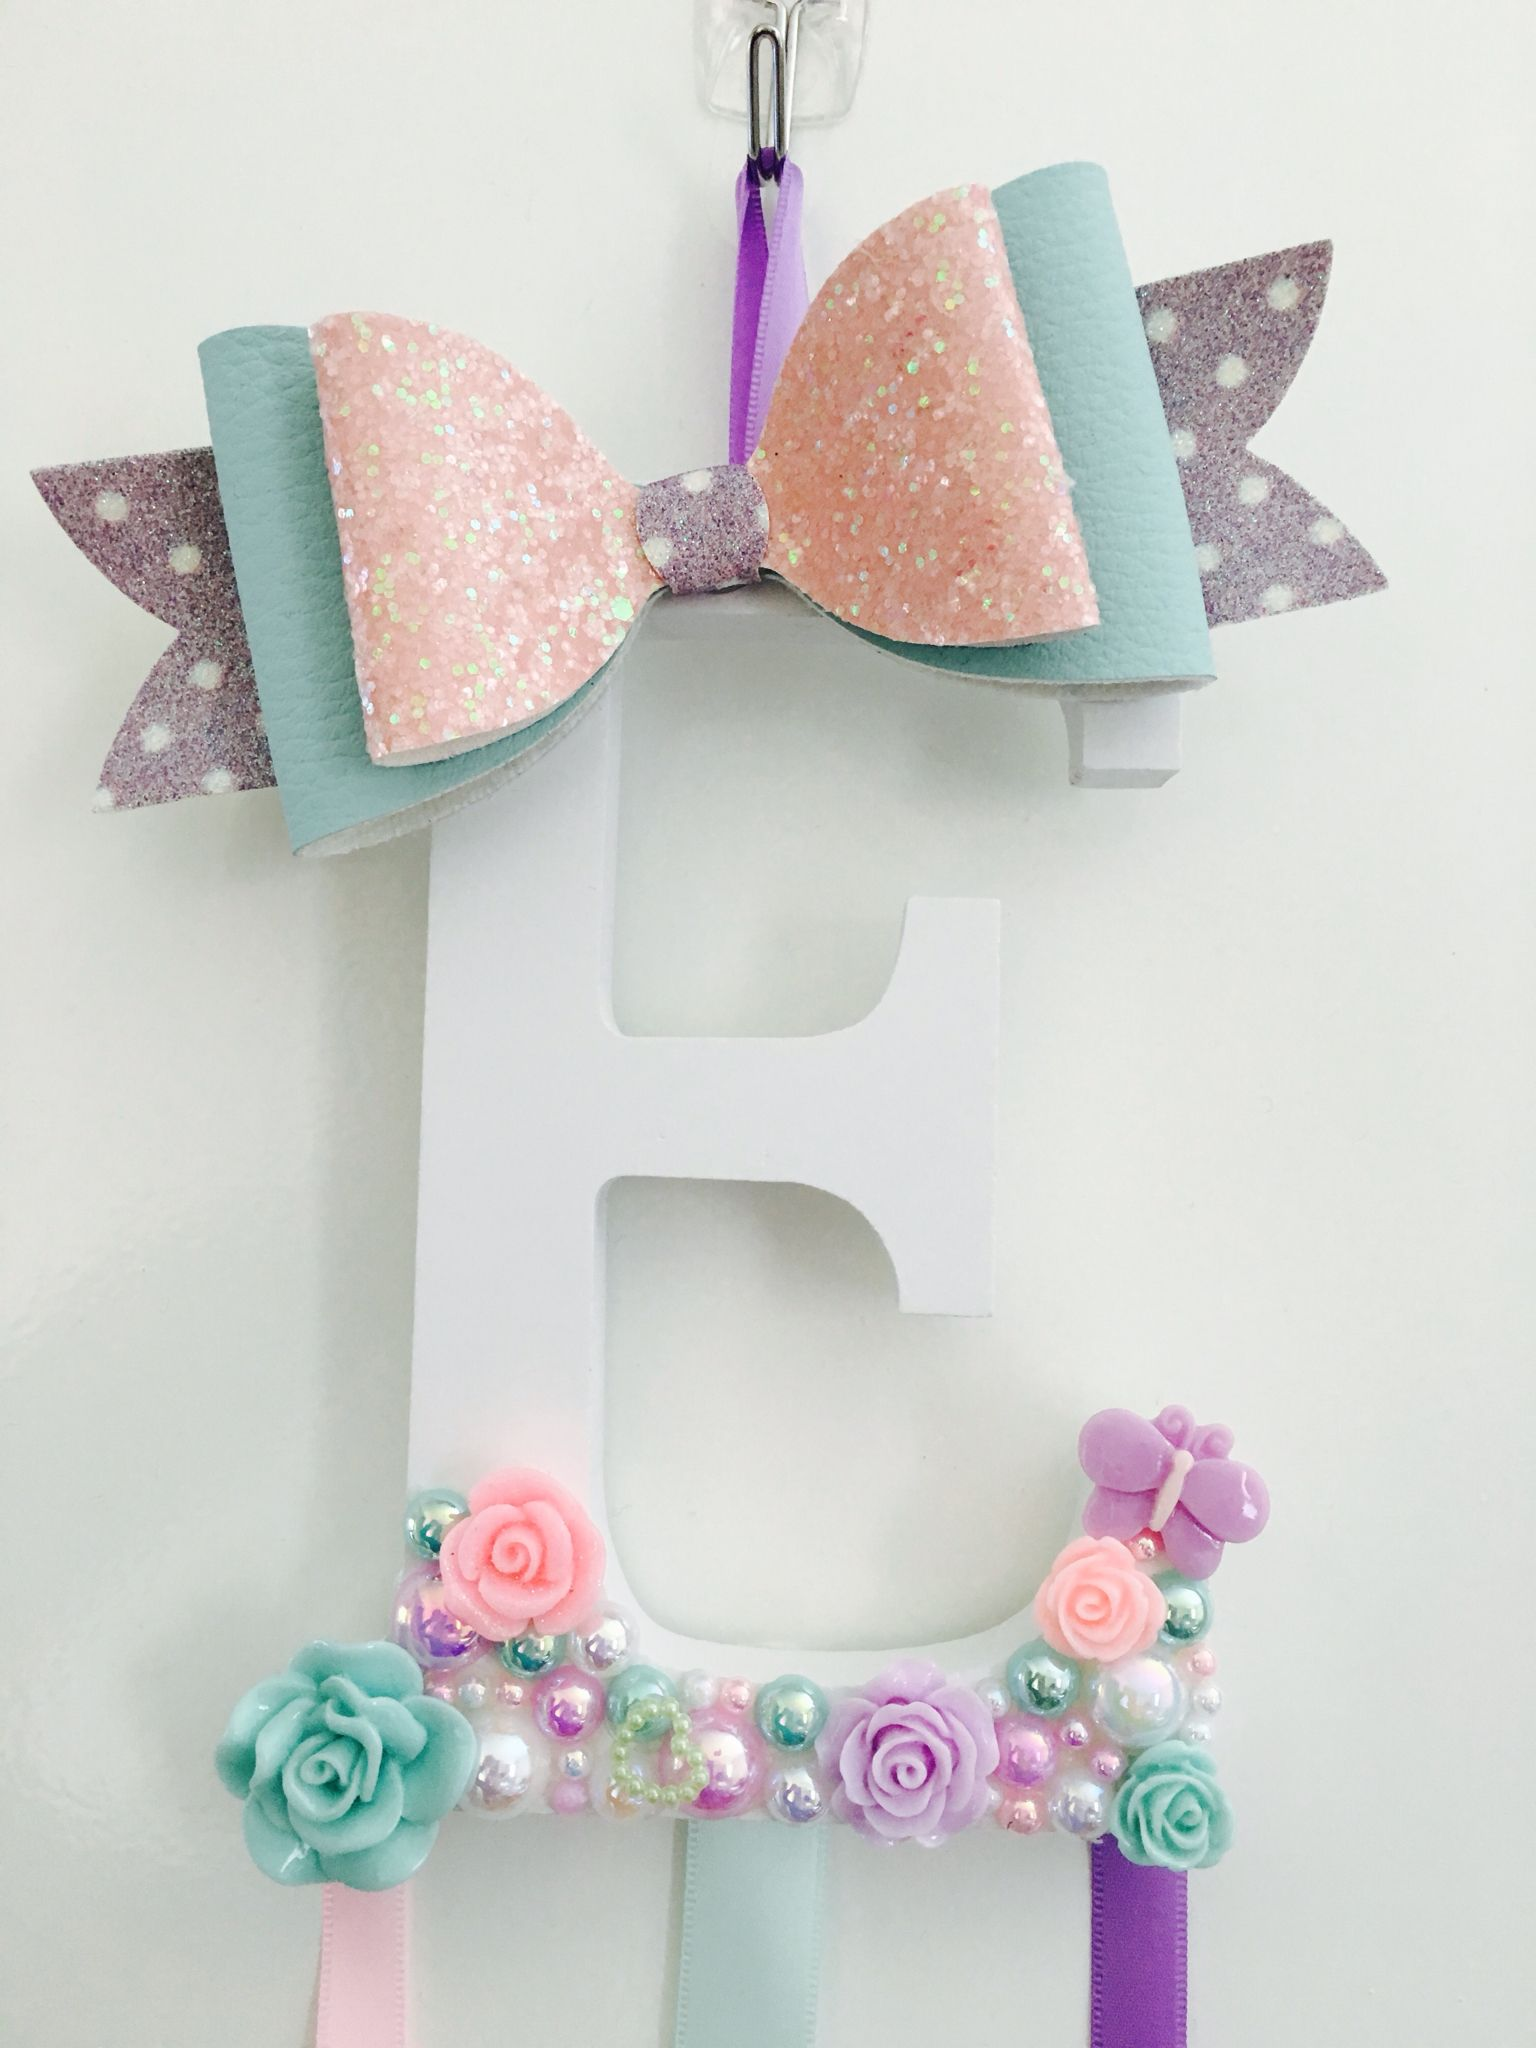 Hair bow holder #hairaccessories #hairbowholder | bows in ...